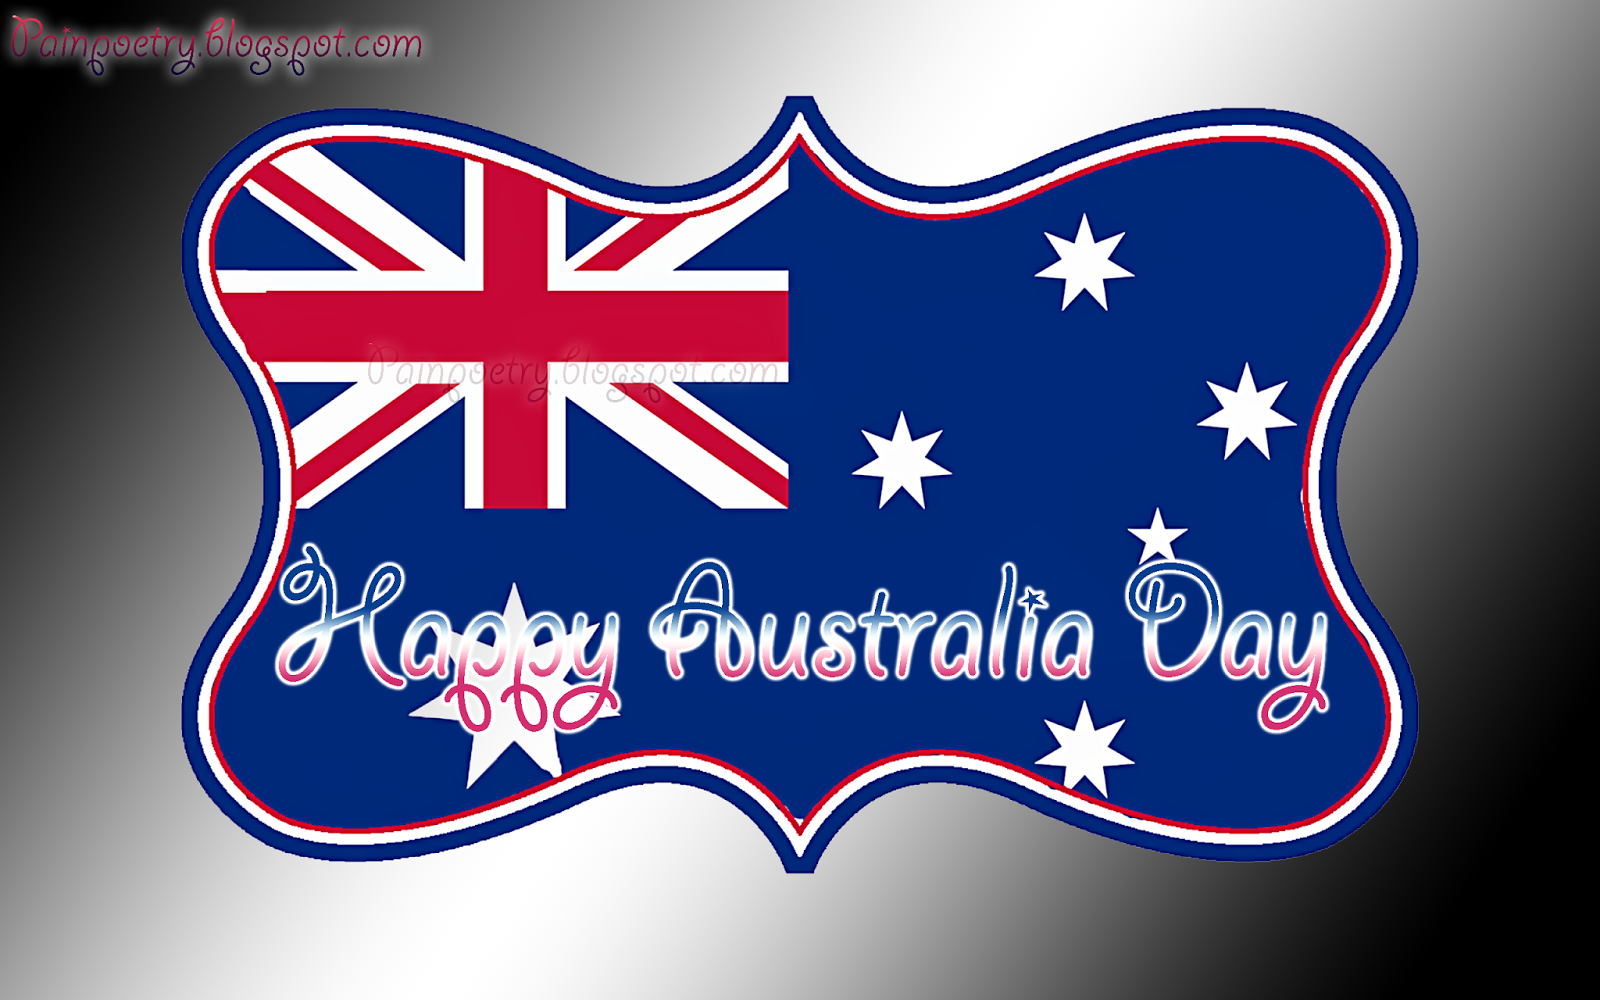 Australia-Day-Flag-Image-HD